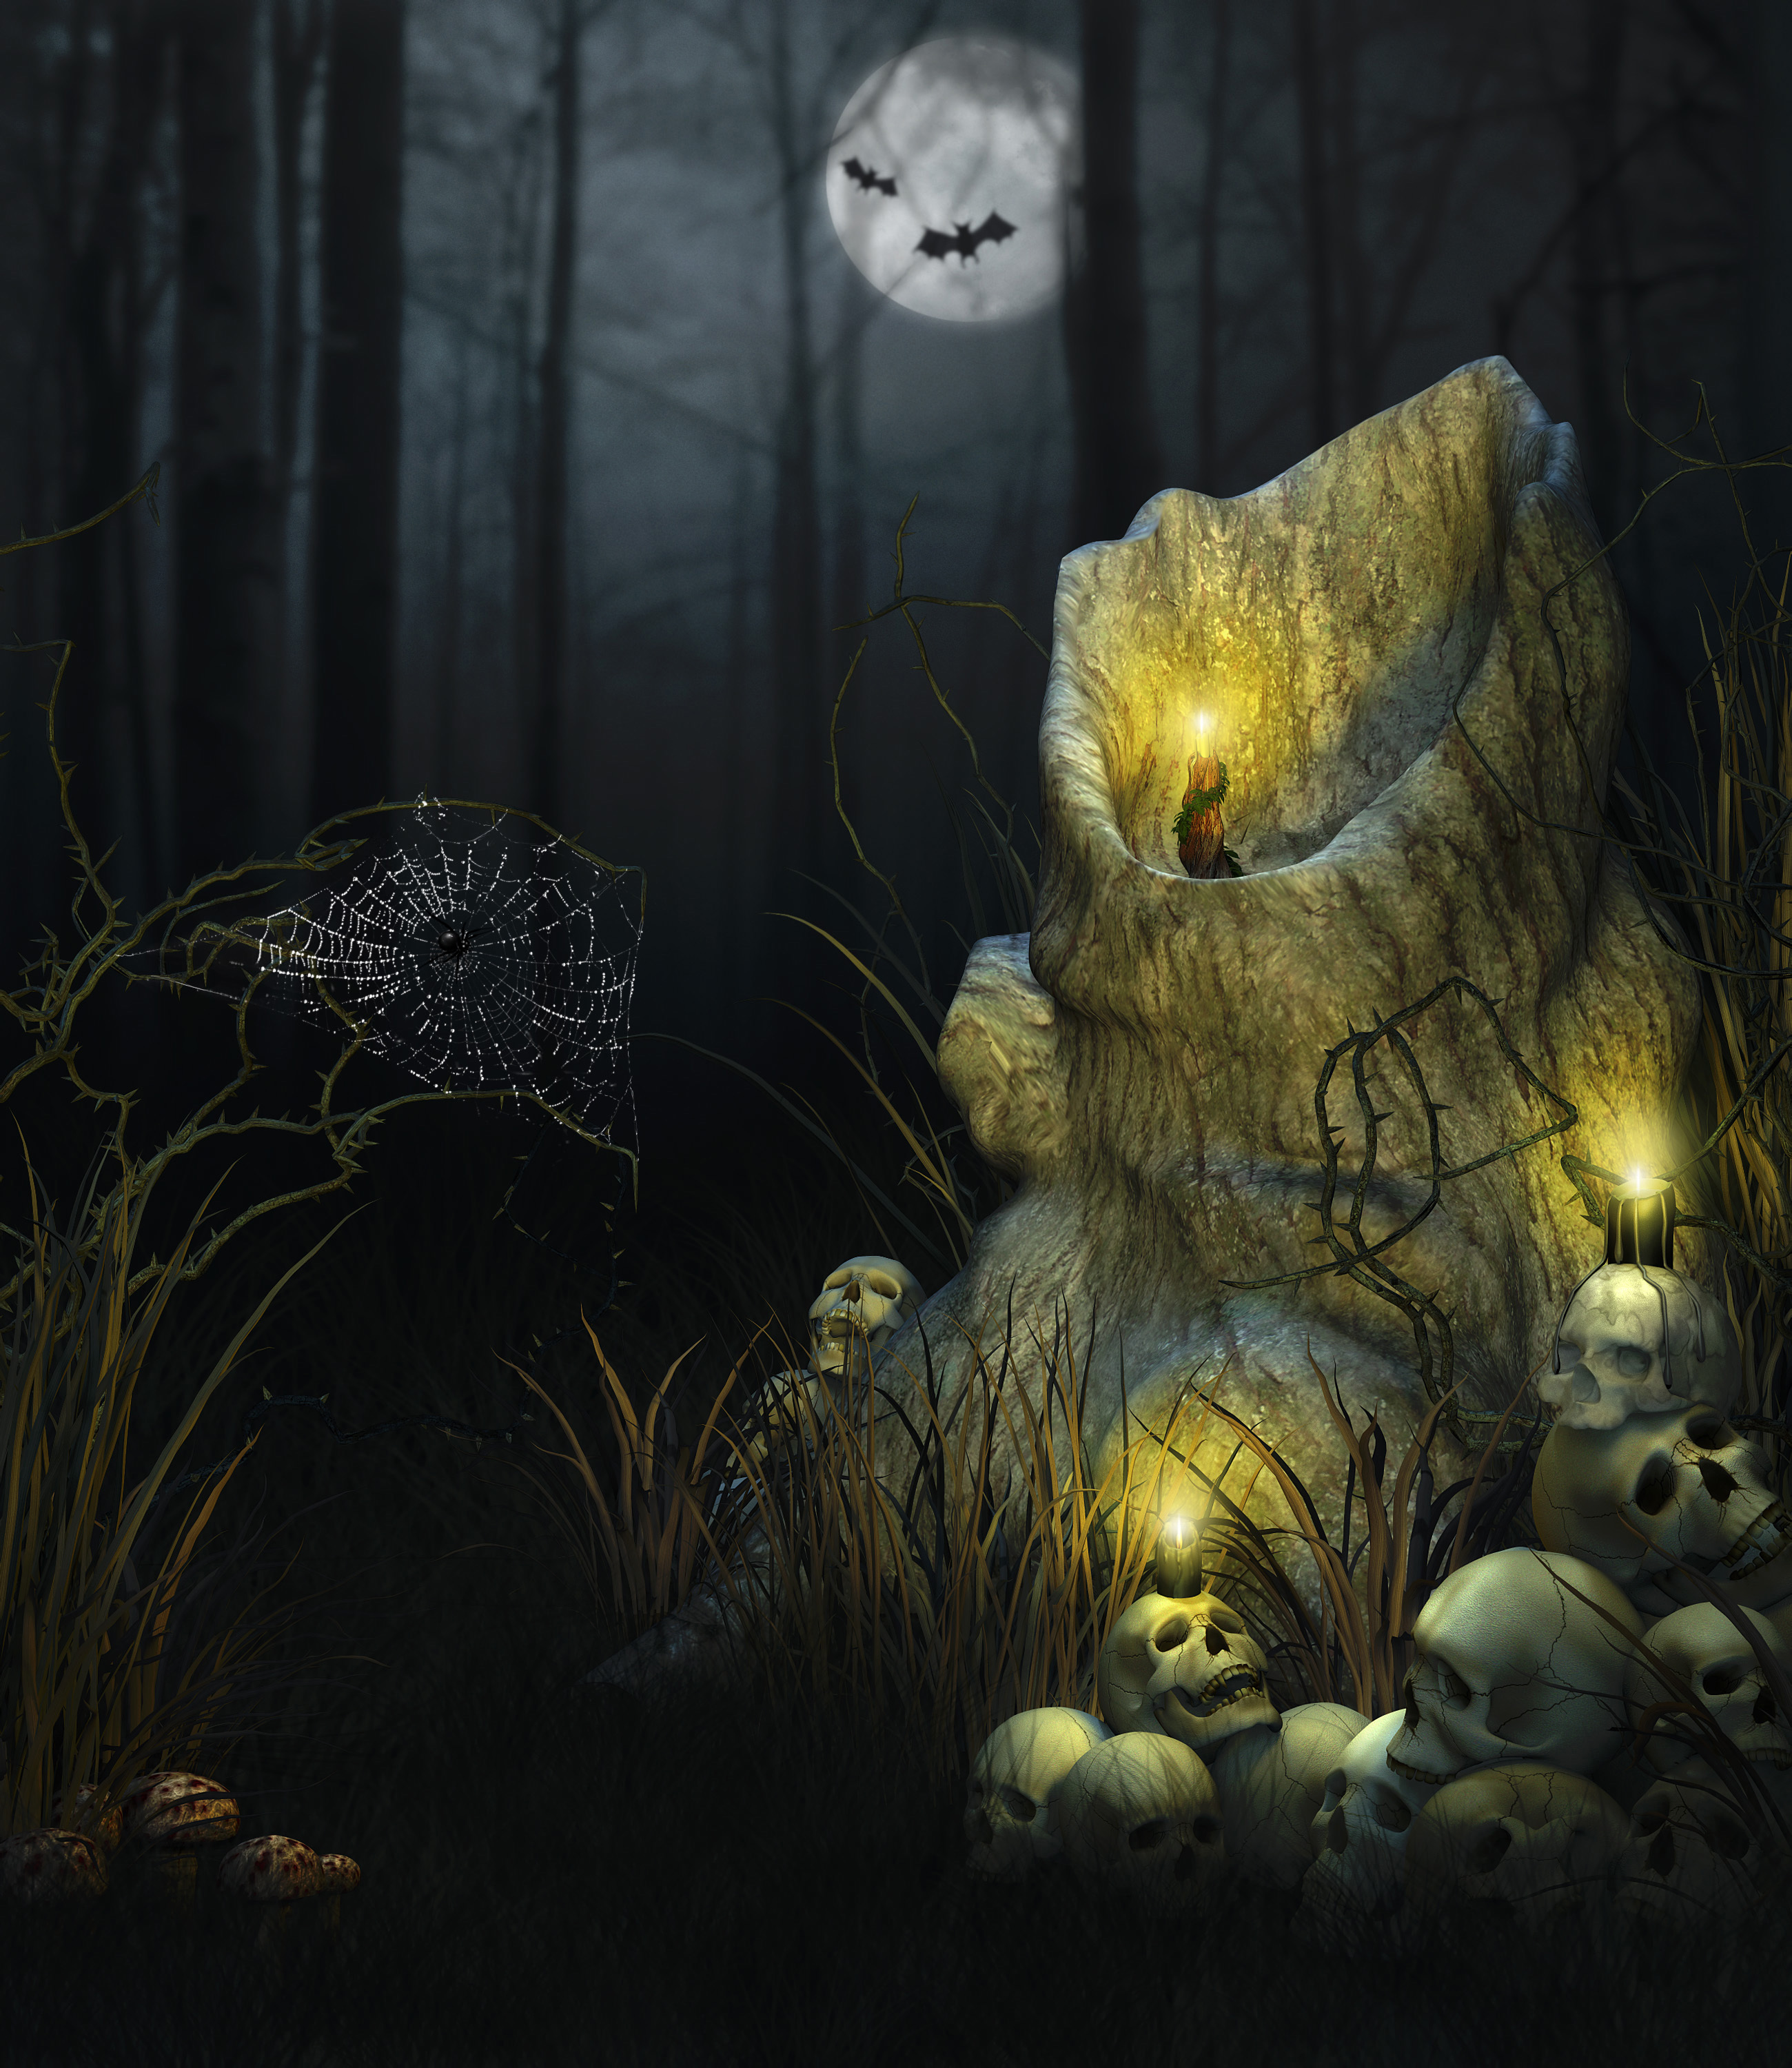 13184 download wallpaper Holidays, Halloween screensavers and pictures for free